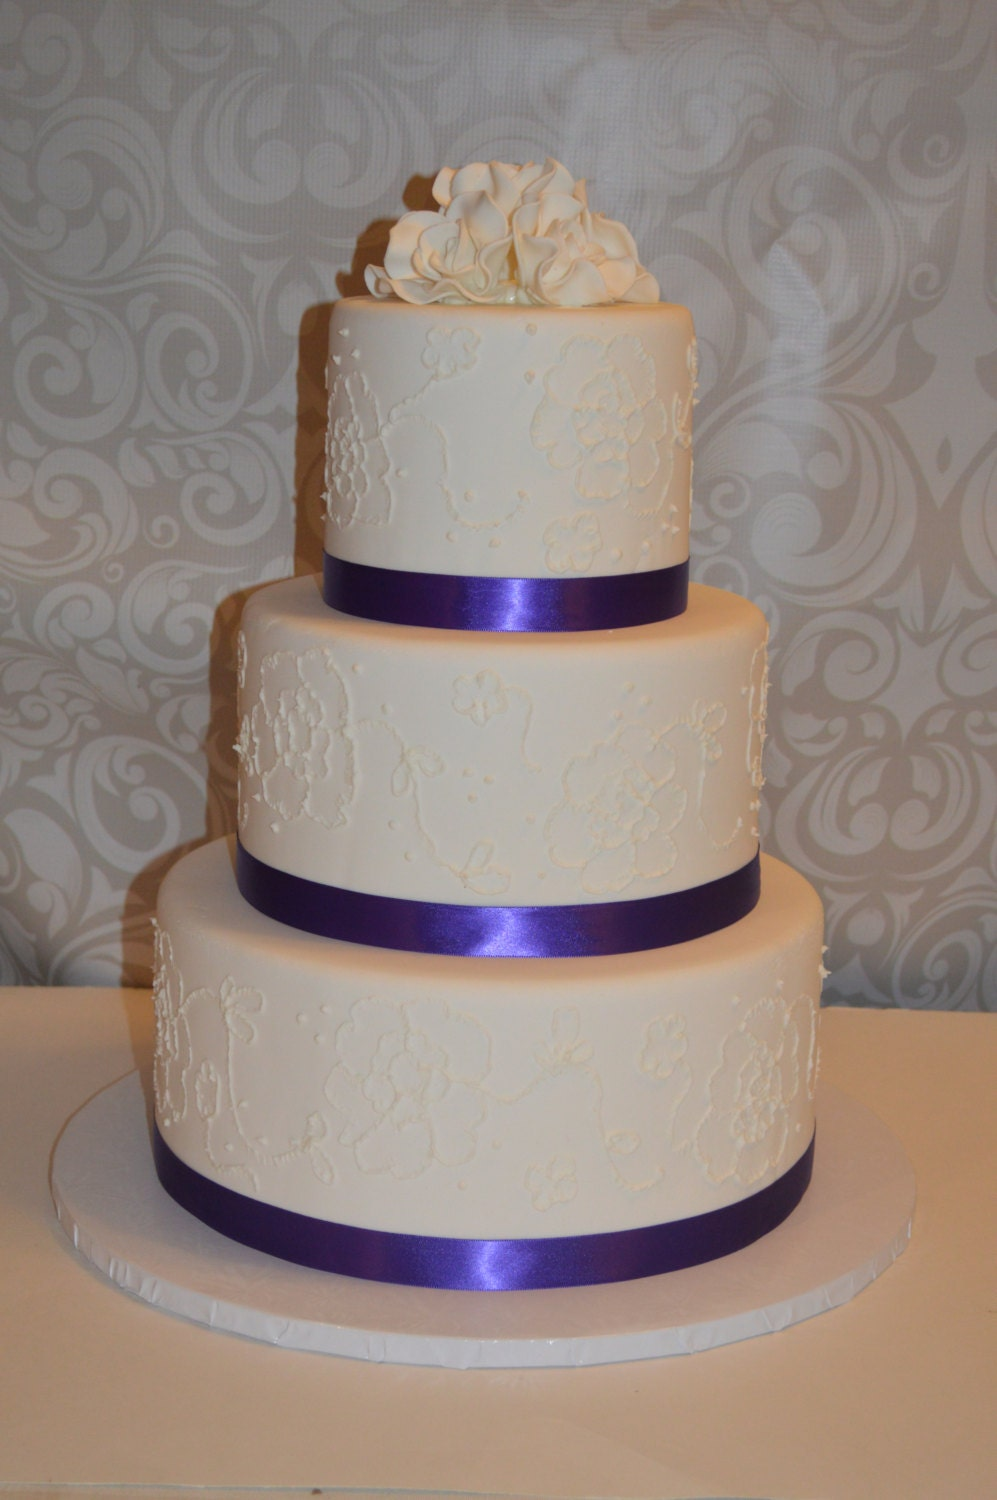 3 Tier Faux Wedding Cake Fake Wedding Cake Dispaly Wedding